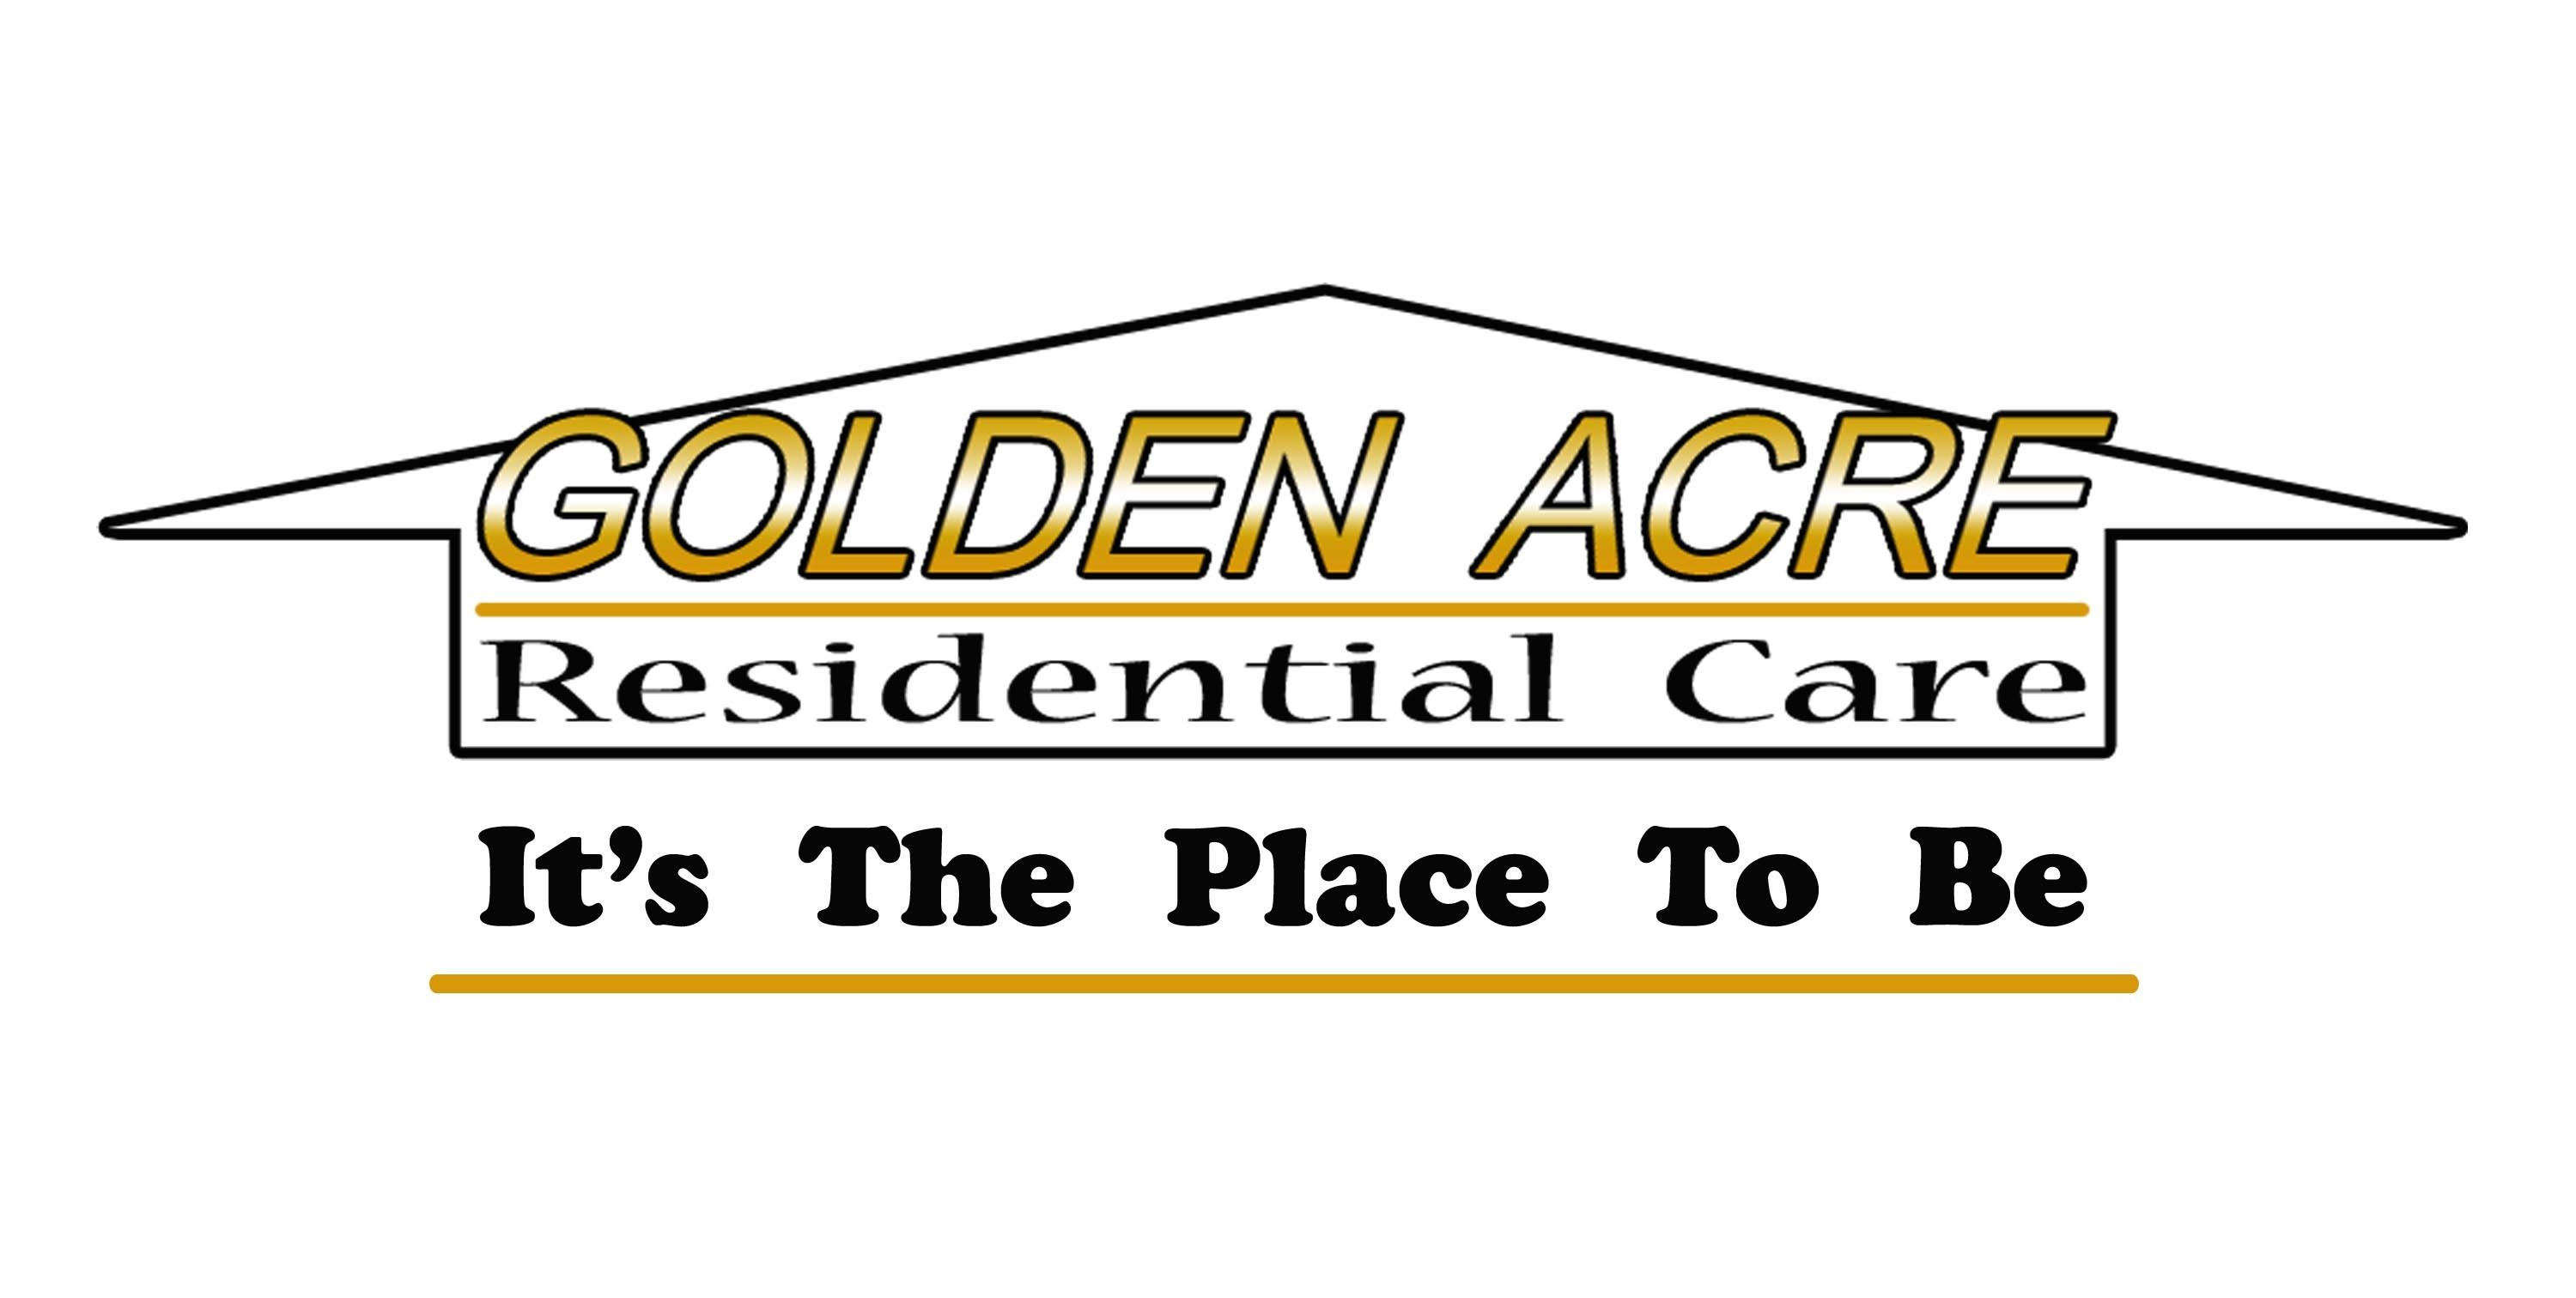 Golden Acre Residential Care - ad image